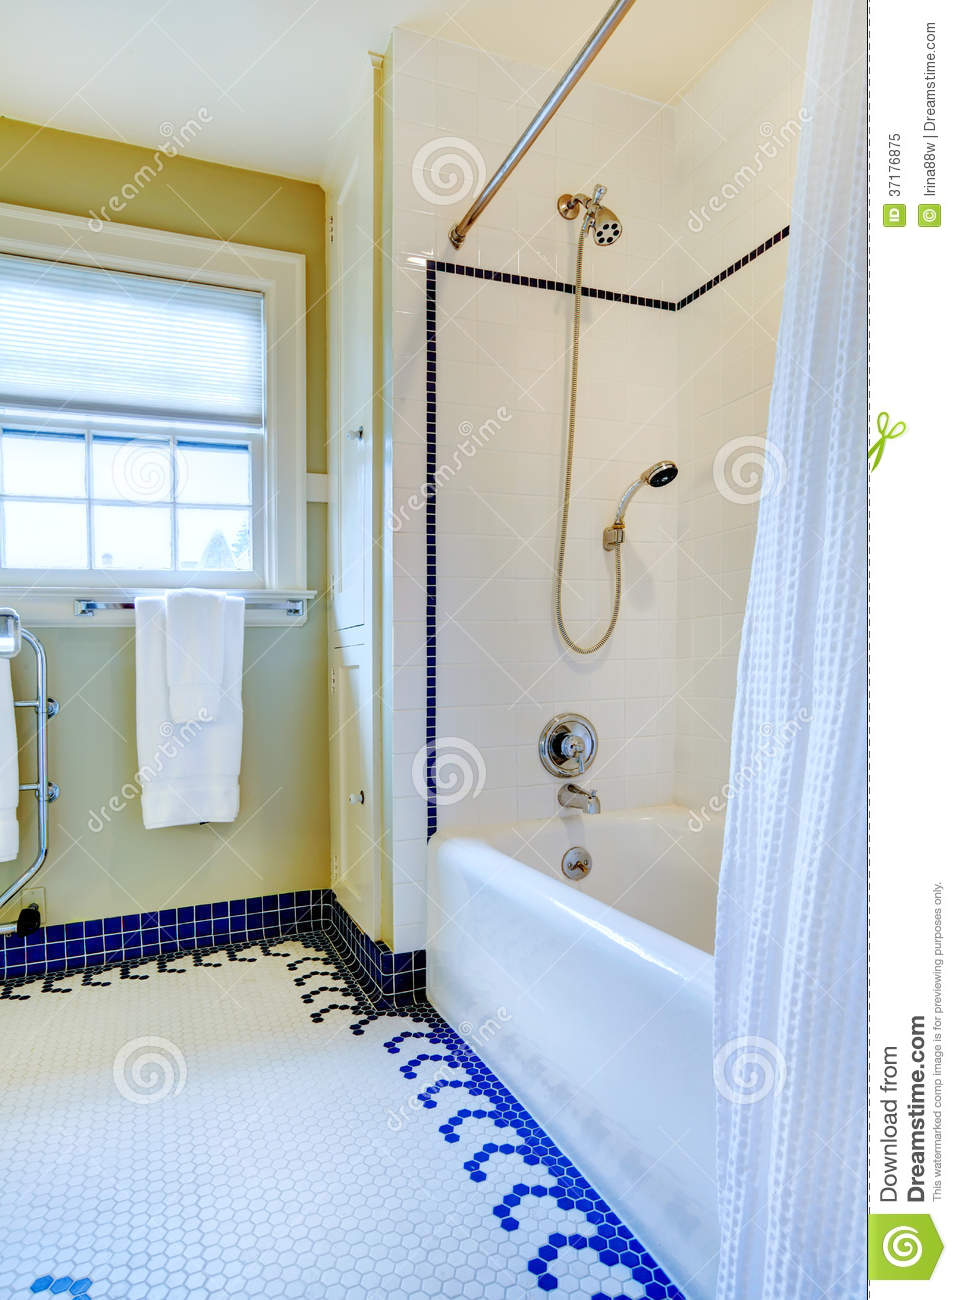 Bright Yellow And White Bathroom With Blue Tile Floor Royalty Free